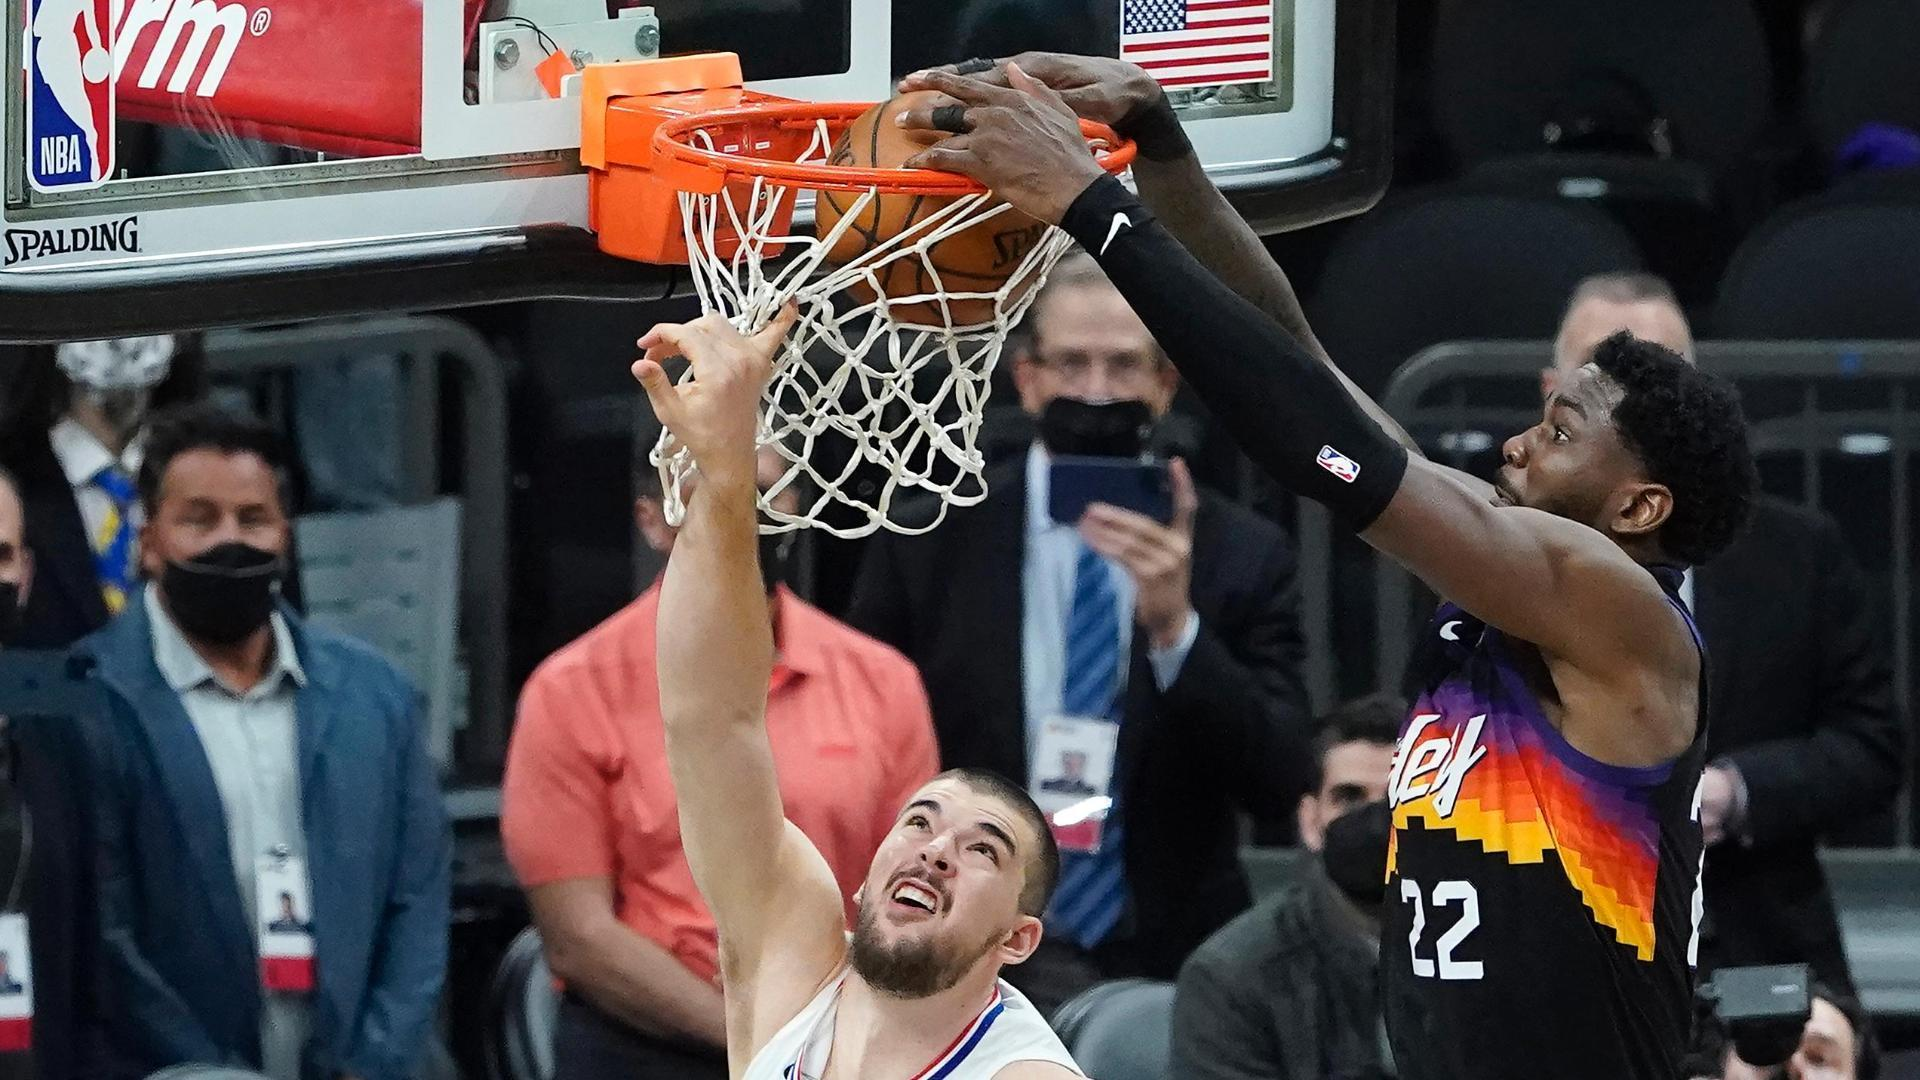 Ayton stuns Clippers with game-winning alley-oop in final second